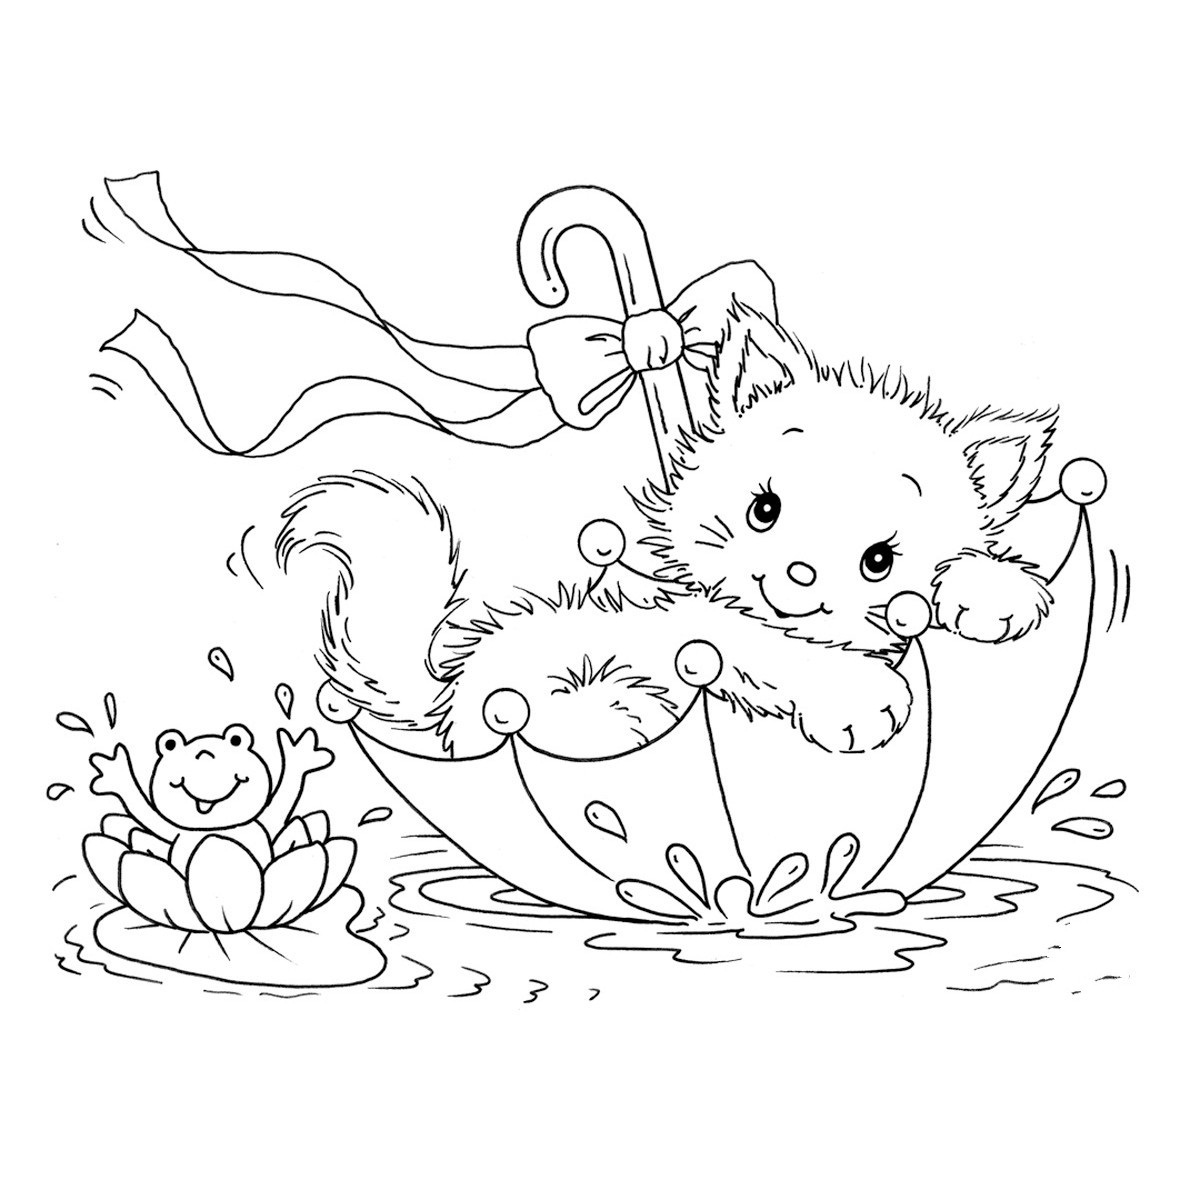 coloring pages of animals cats - photo#16